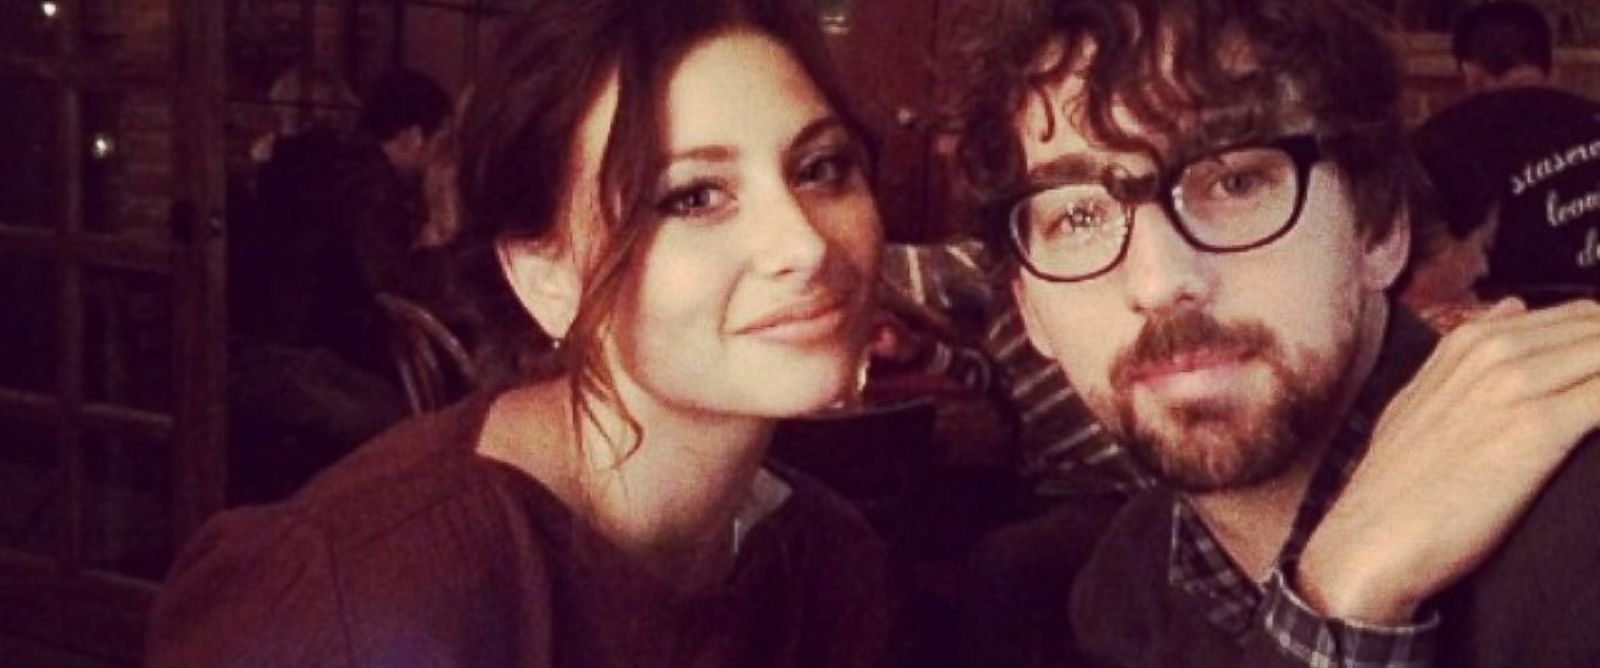 PHOTO: Aly Michalka posted this photo of herself and then-fiance Stephen Ringer to Instagram